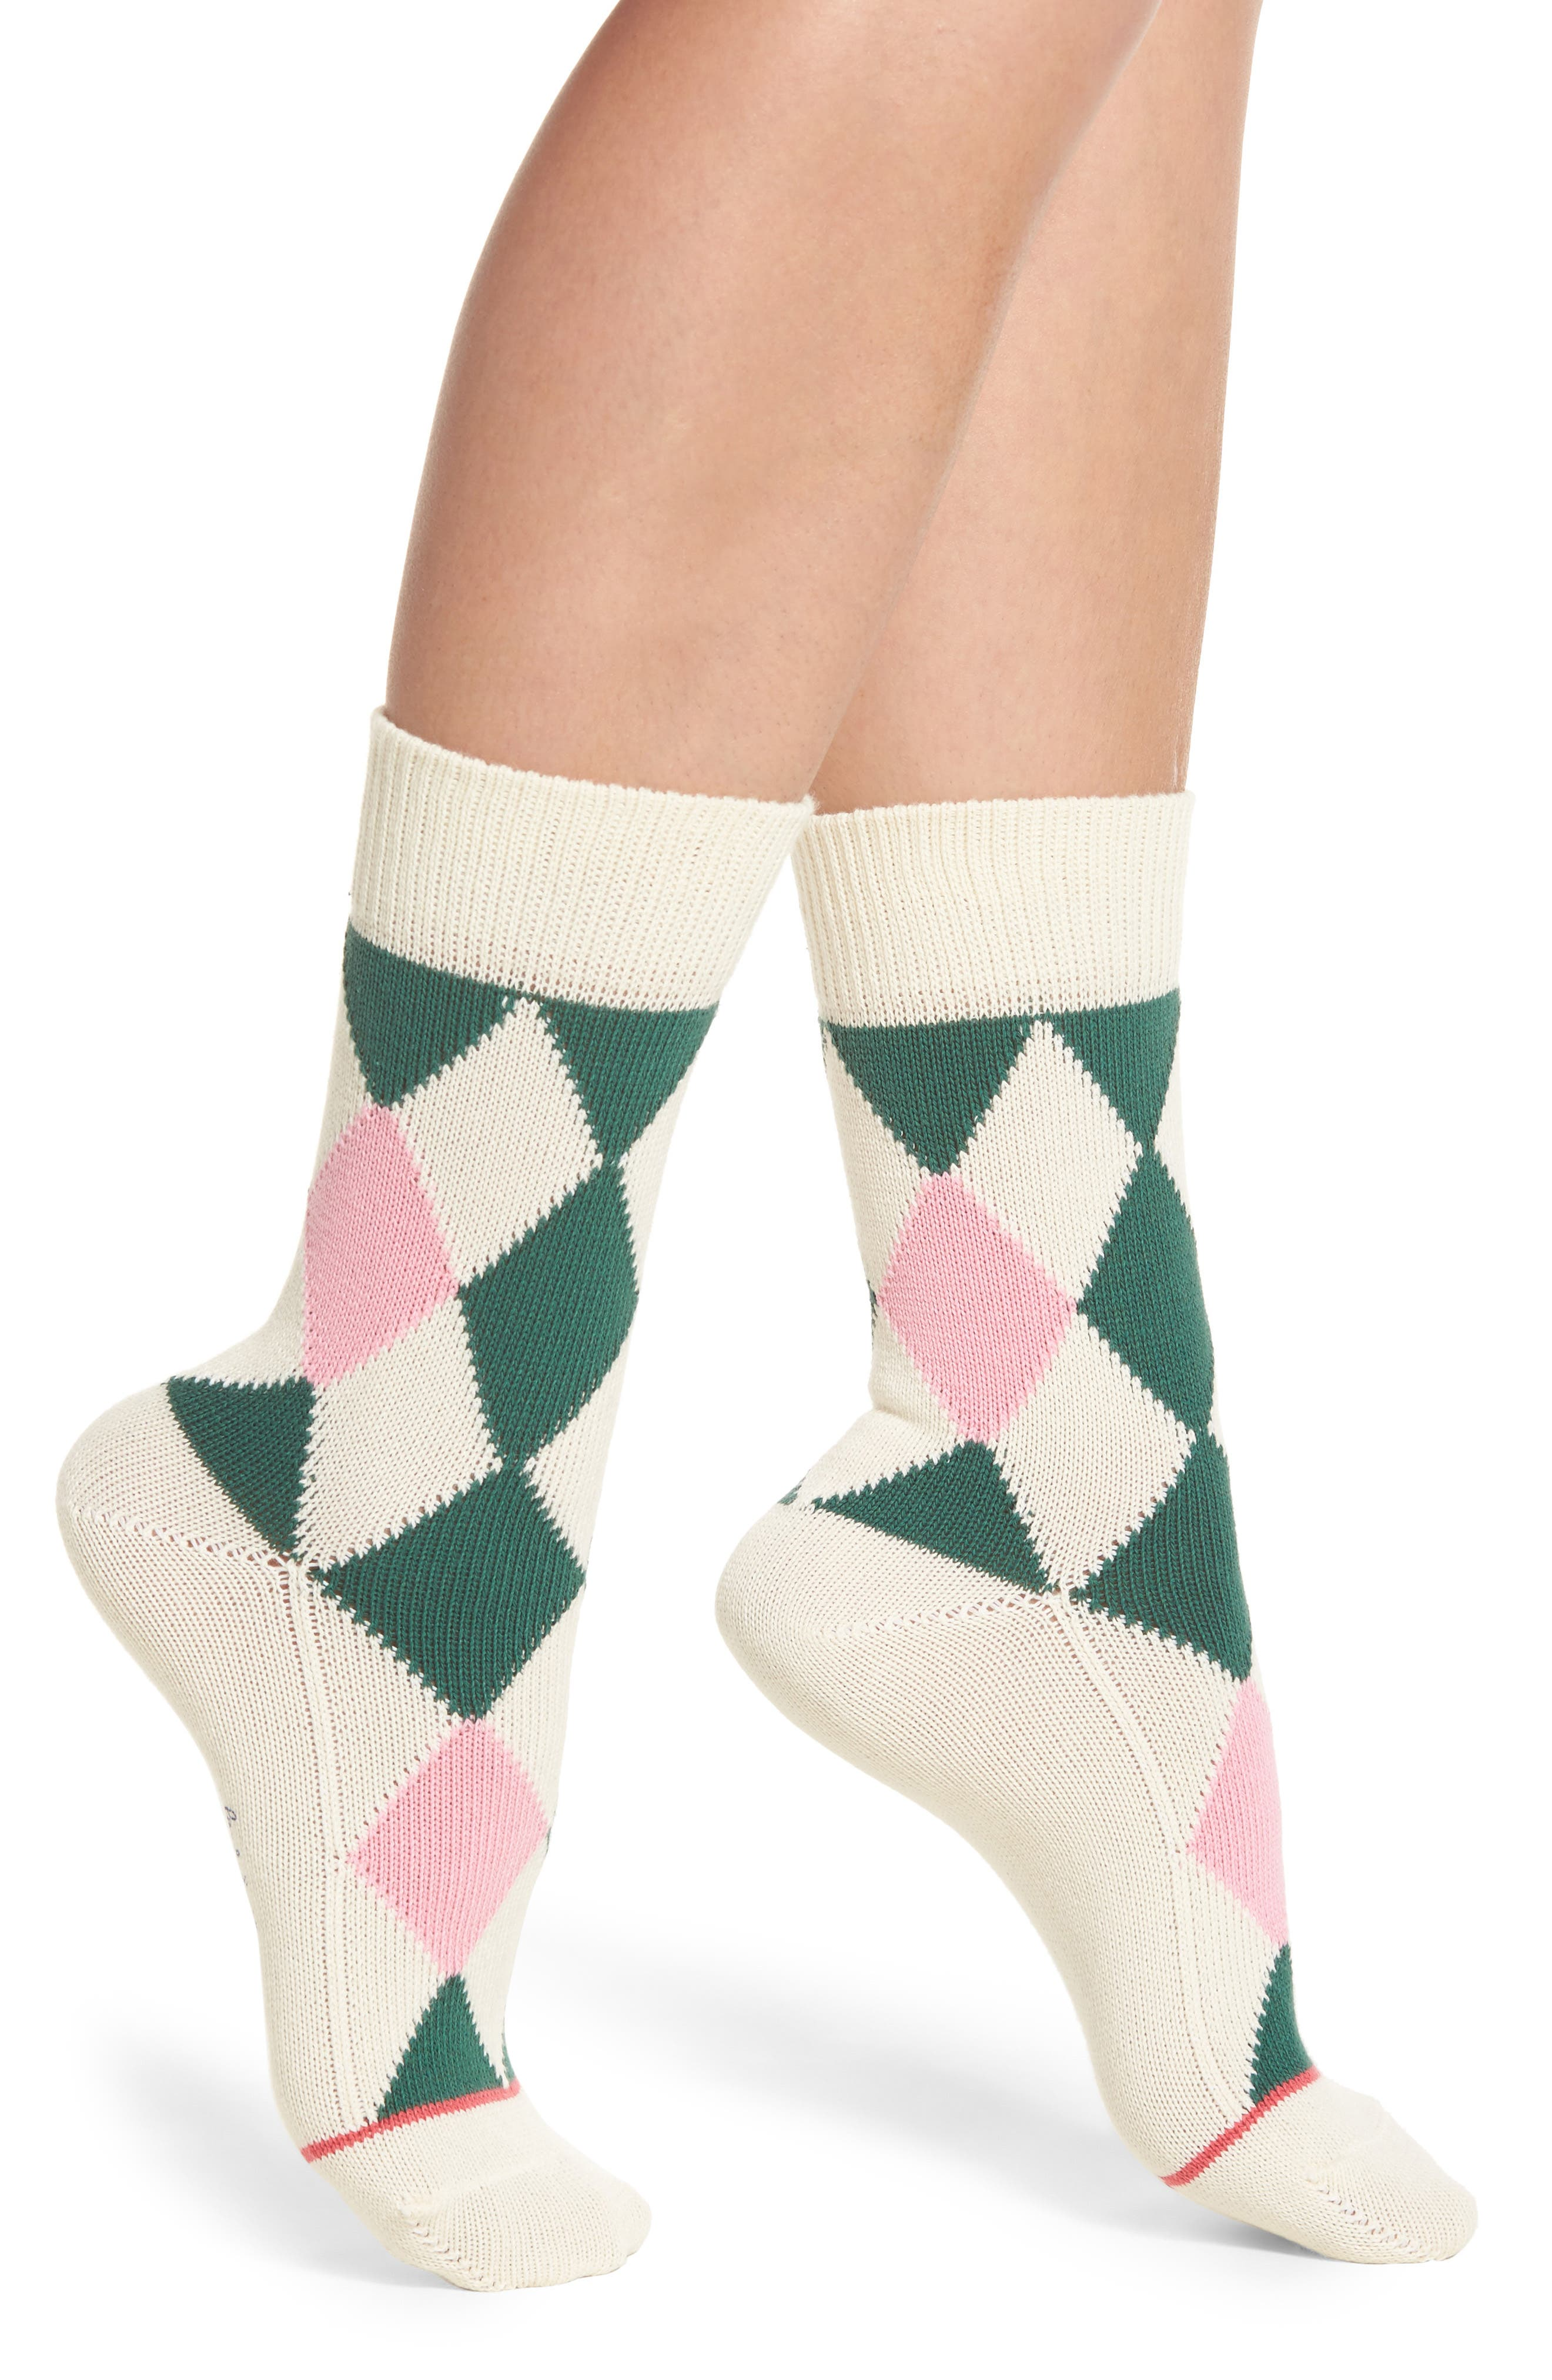 Paul Smith Finella Argyle Crew Socks